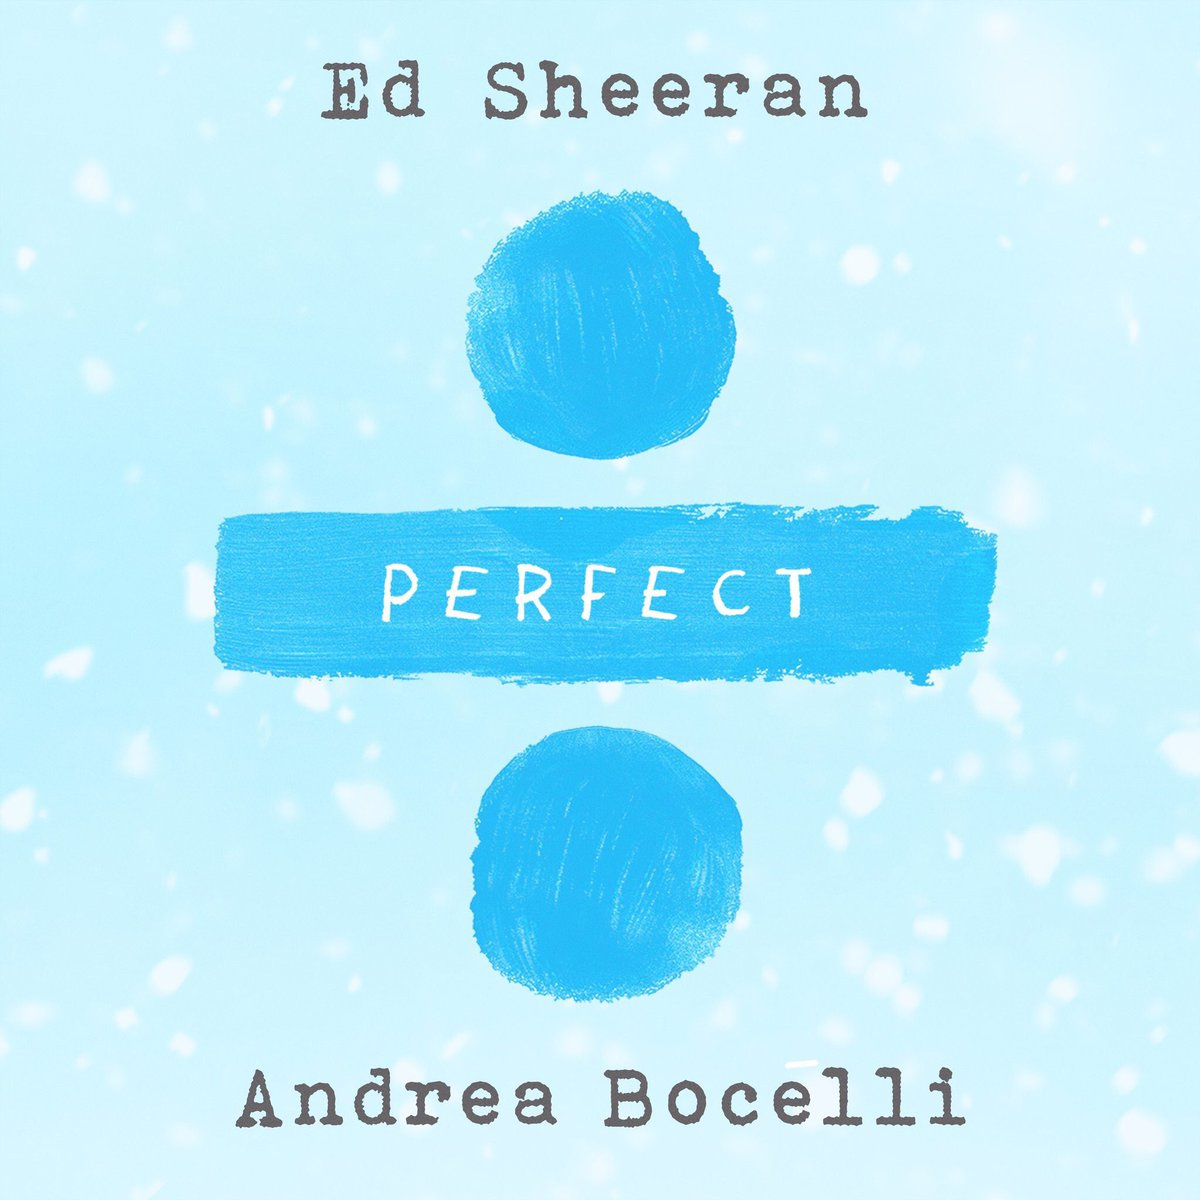 'Perfect Symphony' by Ed Sheeran and And...